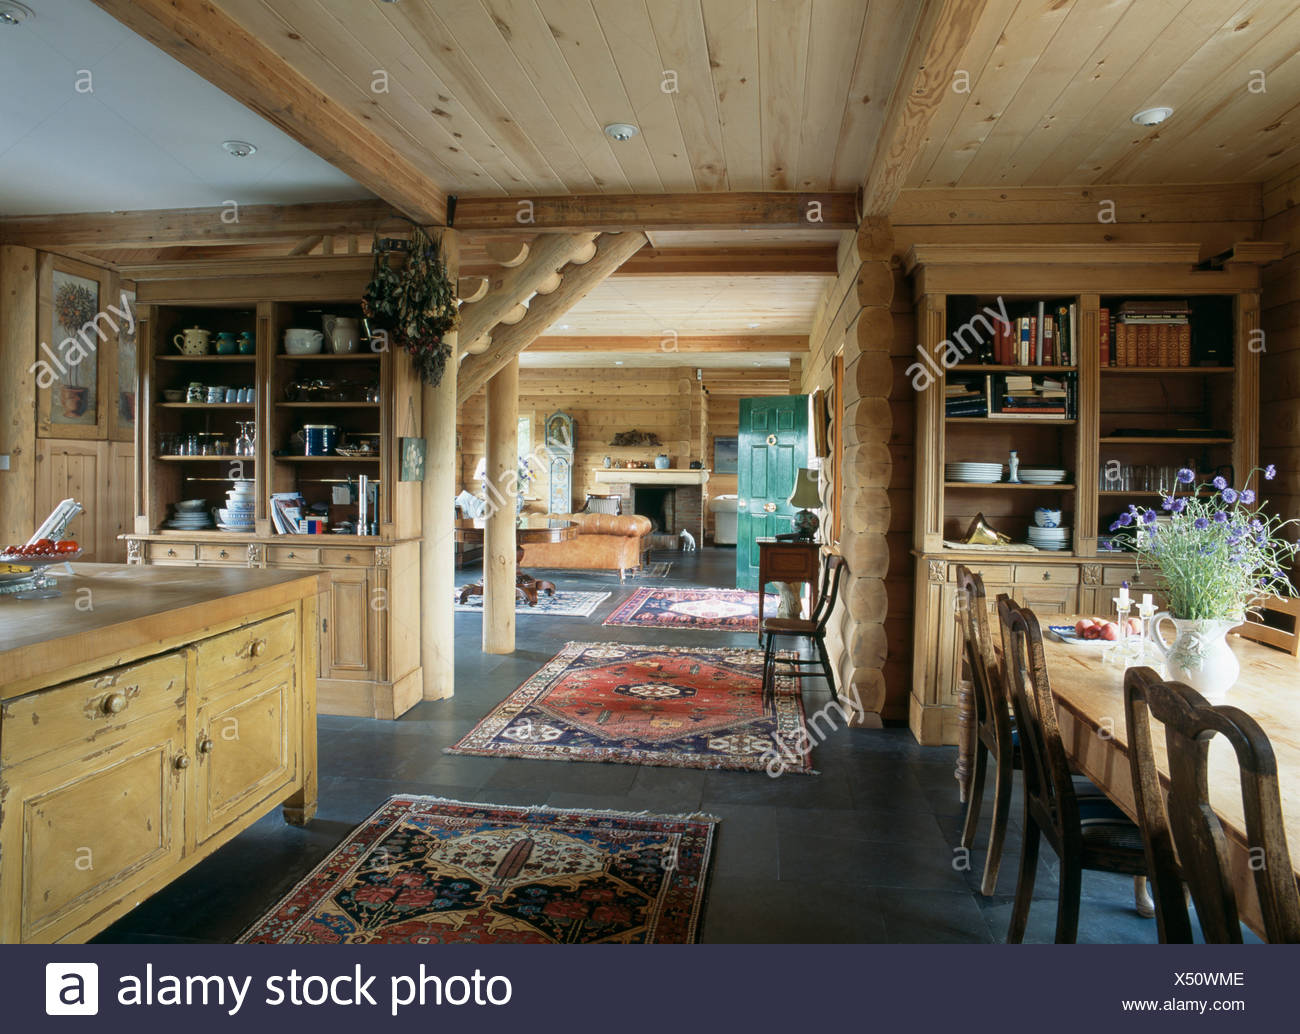 Oriental Rugs On Slate Floor In Open Plan Dining Room With Wooden Ceiling  And Log Paneled Walls And Doorway To Living Room